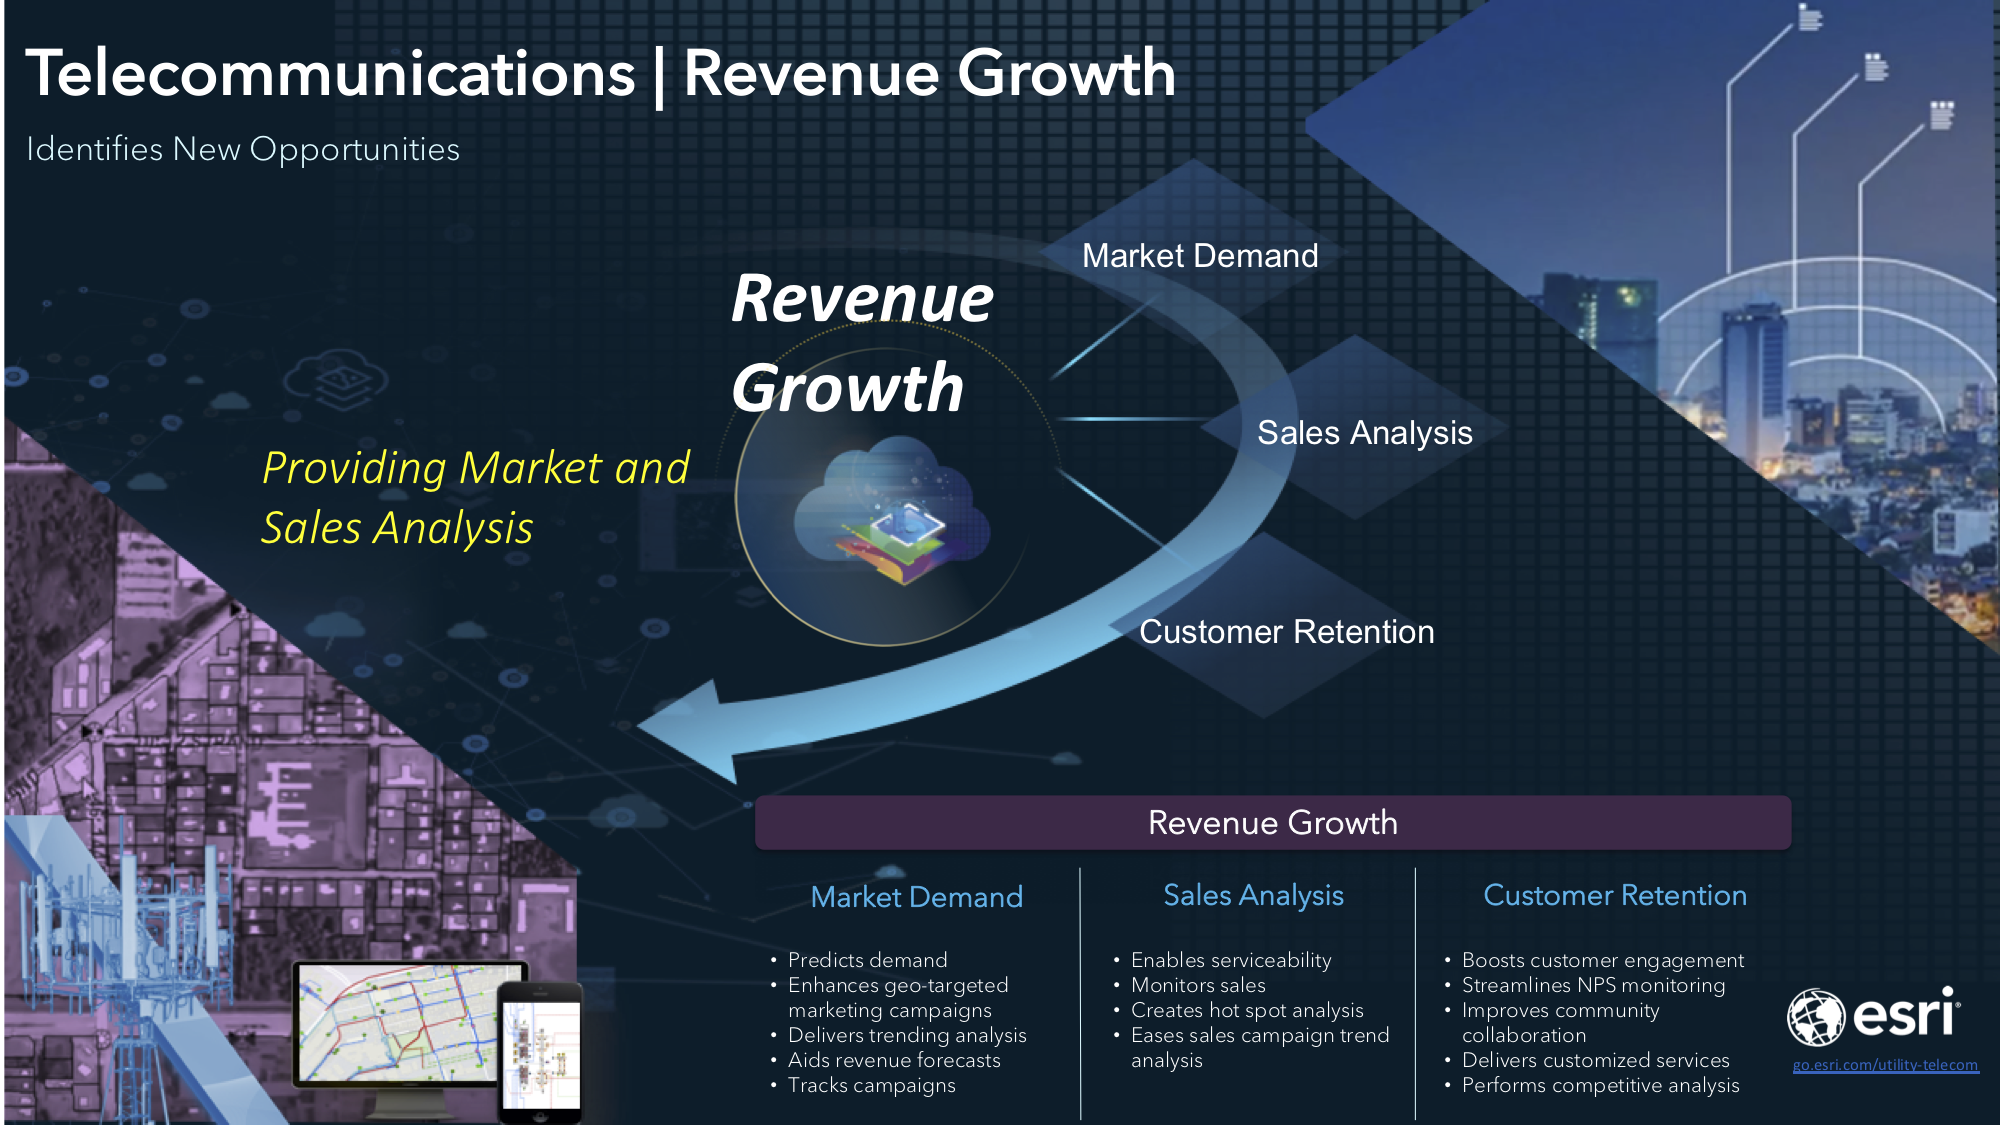 Telecommunications: Revenue Growth